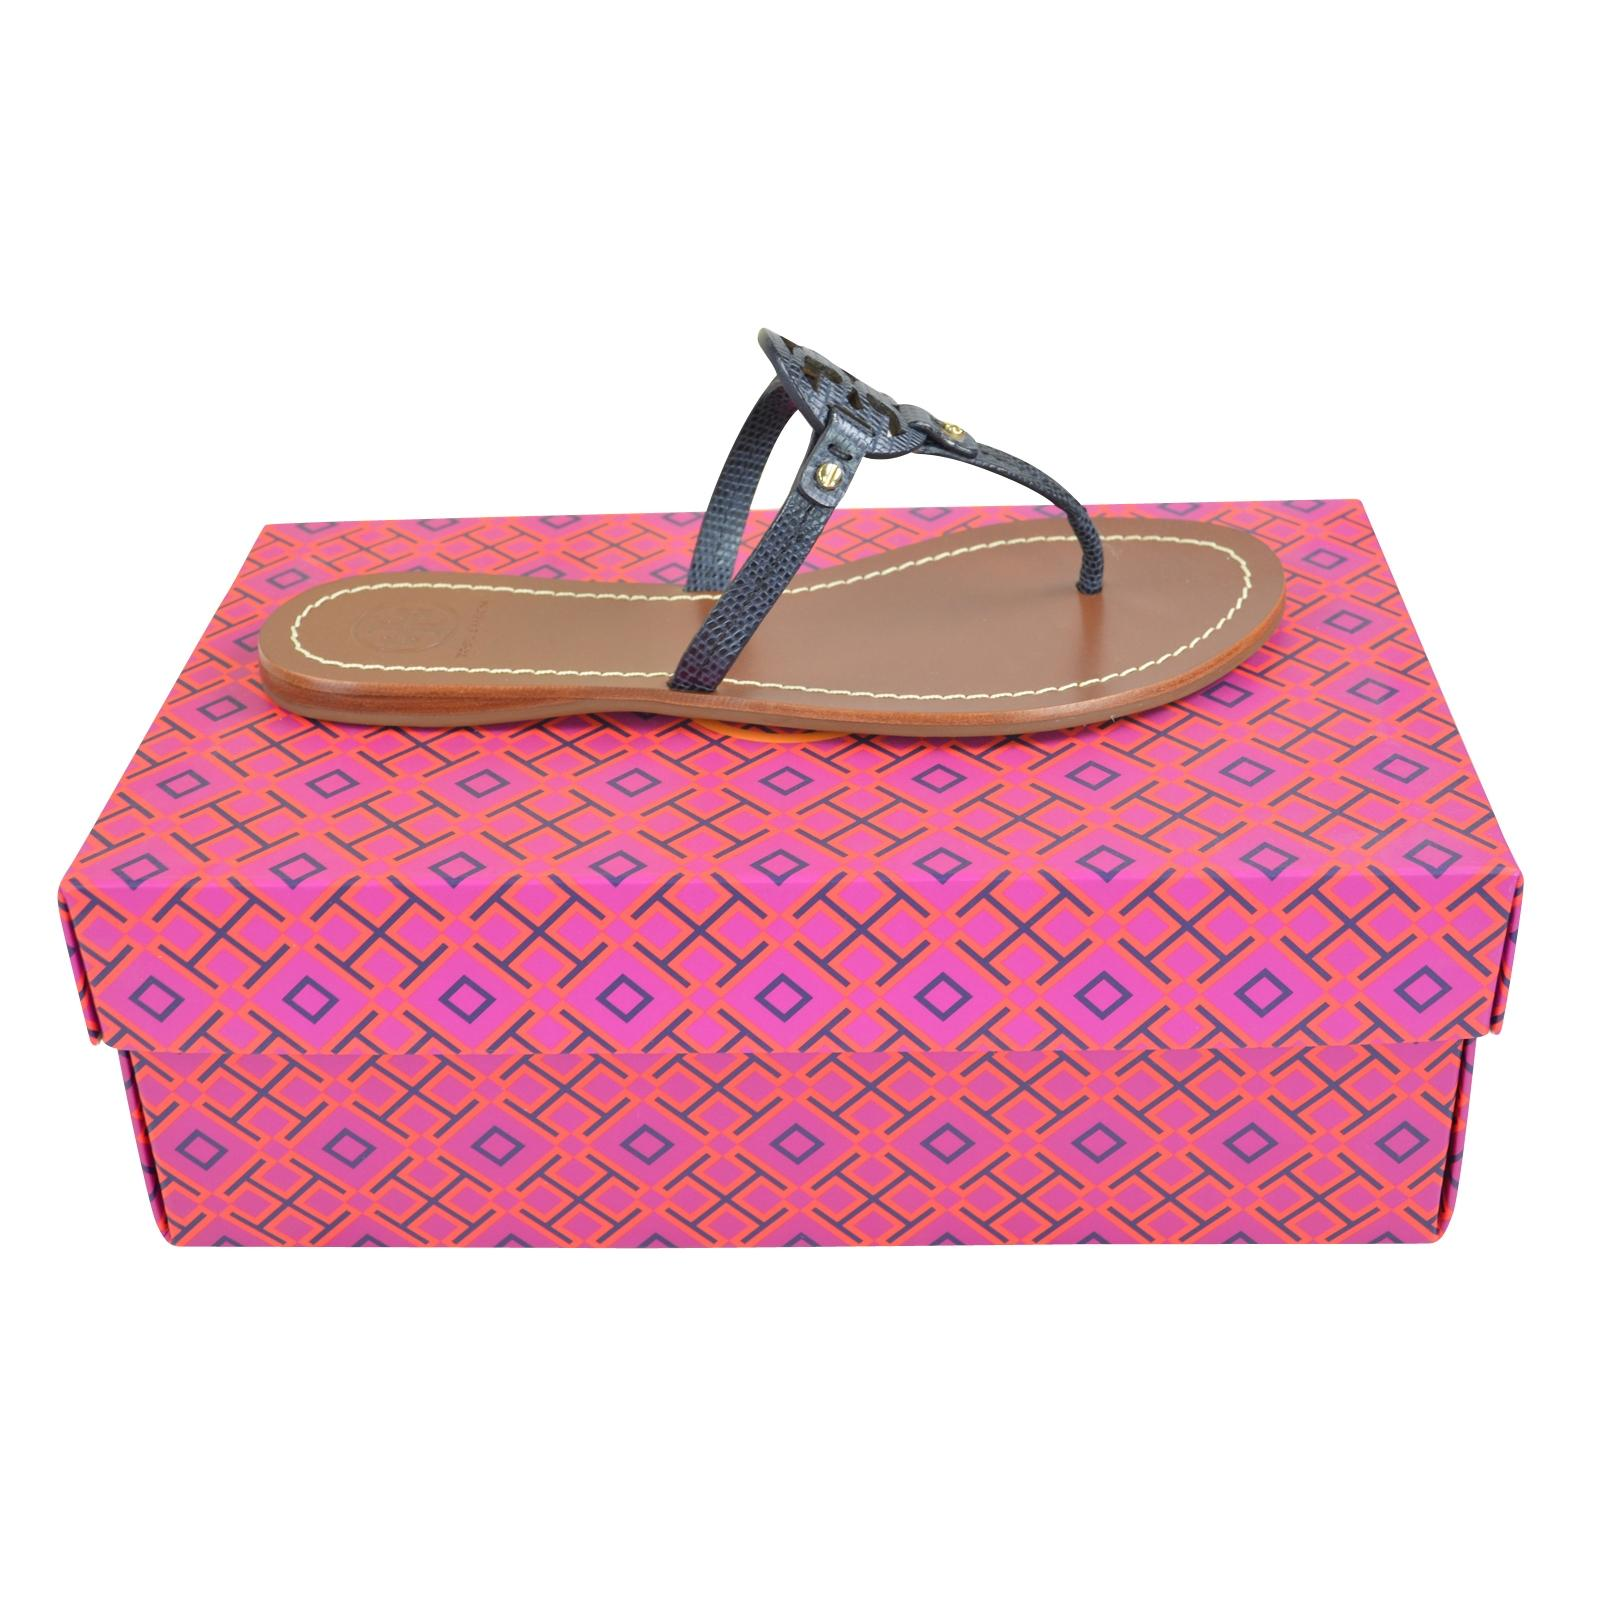 58e5233a194802 Tory Burch Burch Burch Navy Mini Miller Tejust Print Sandals Size US 6.5  Regular (M